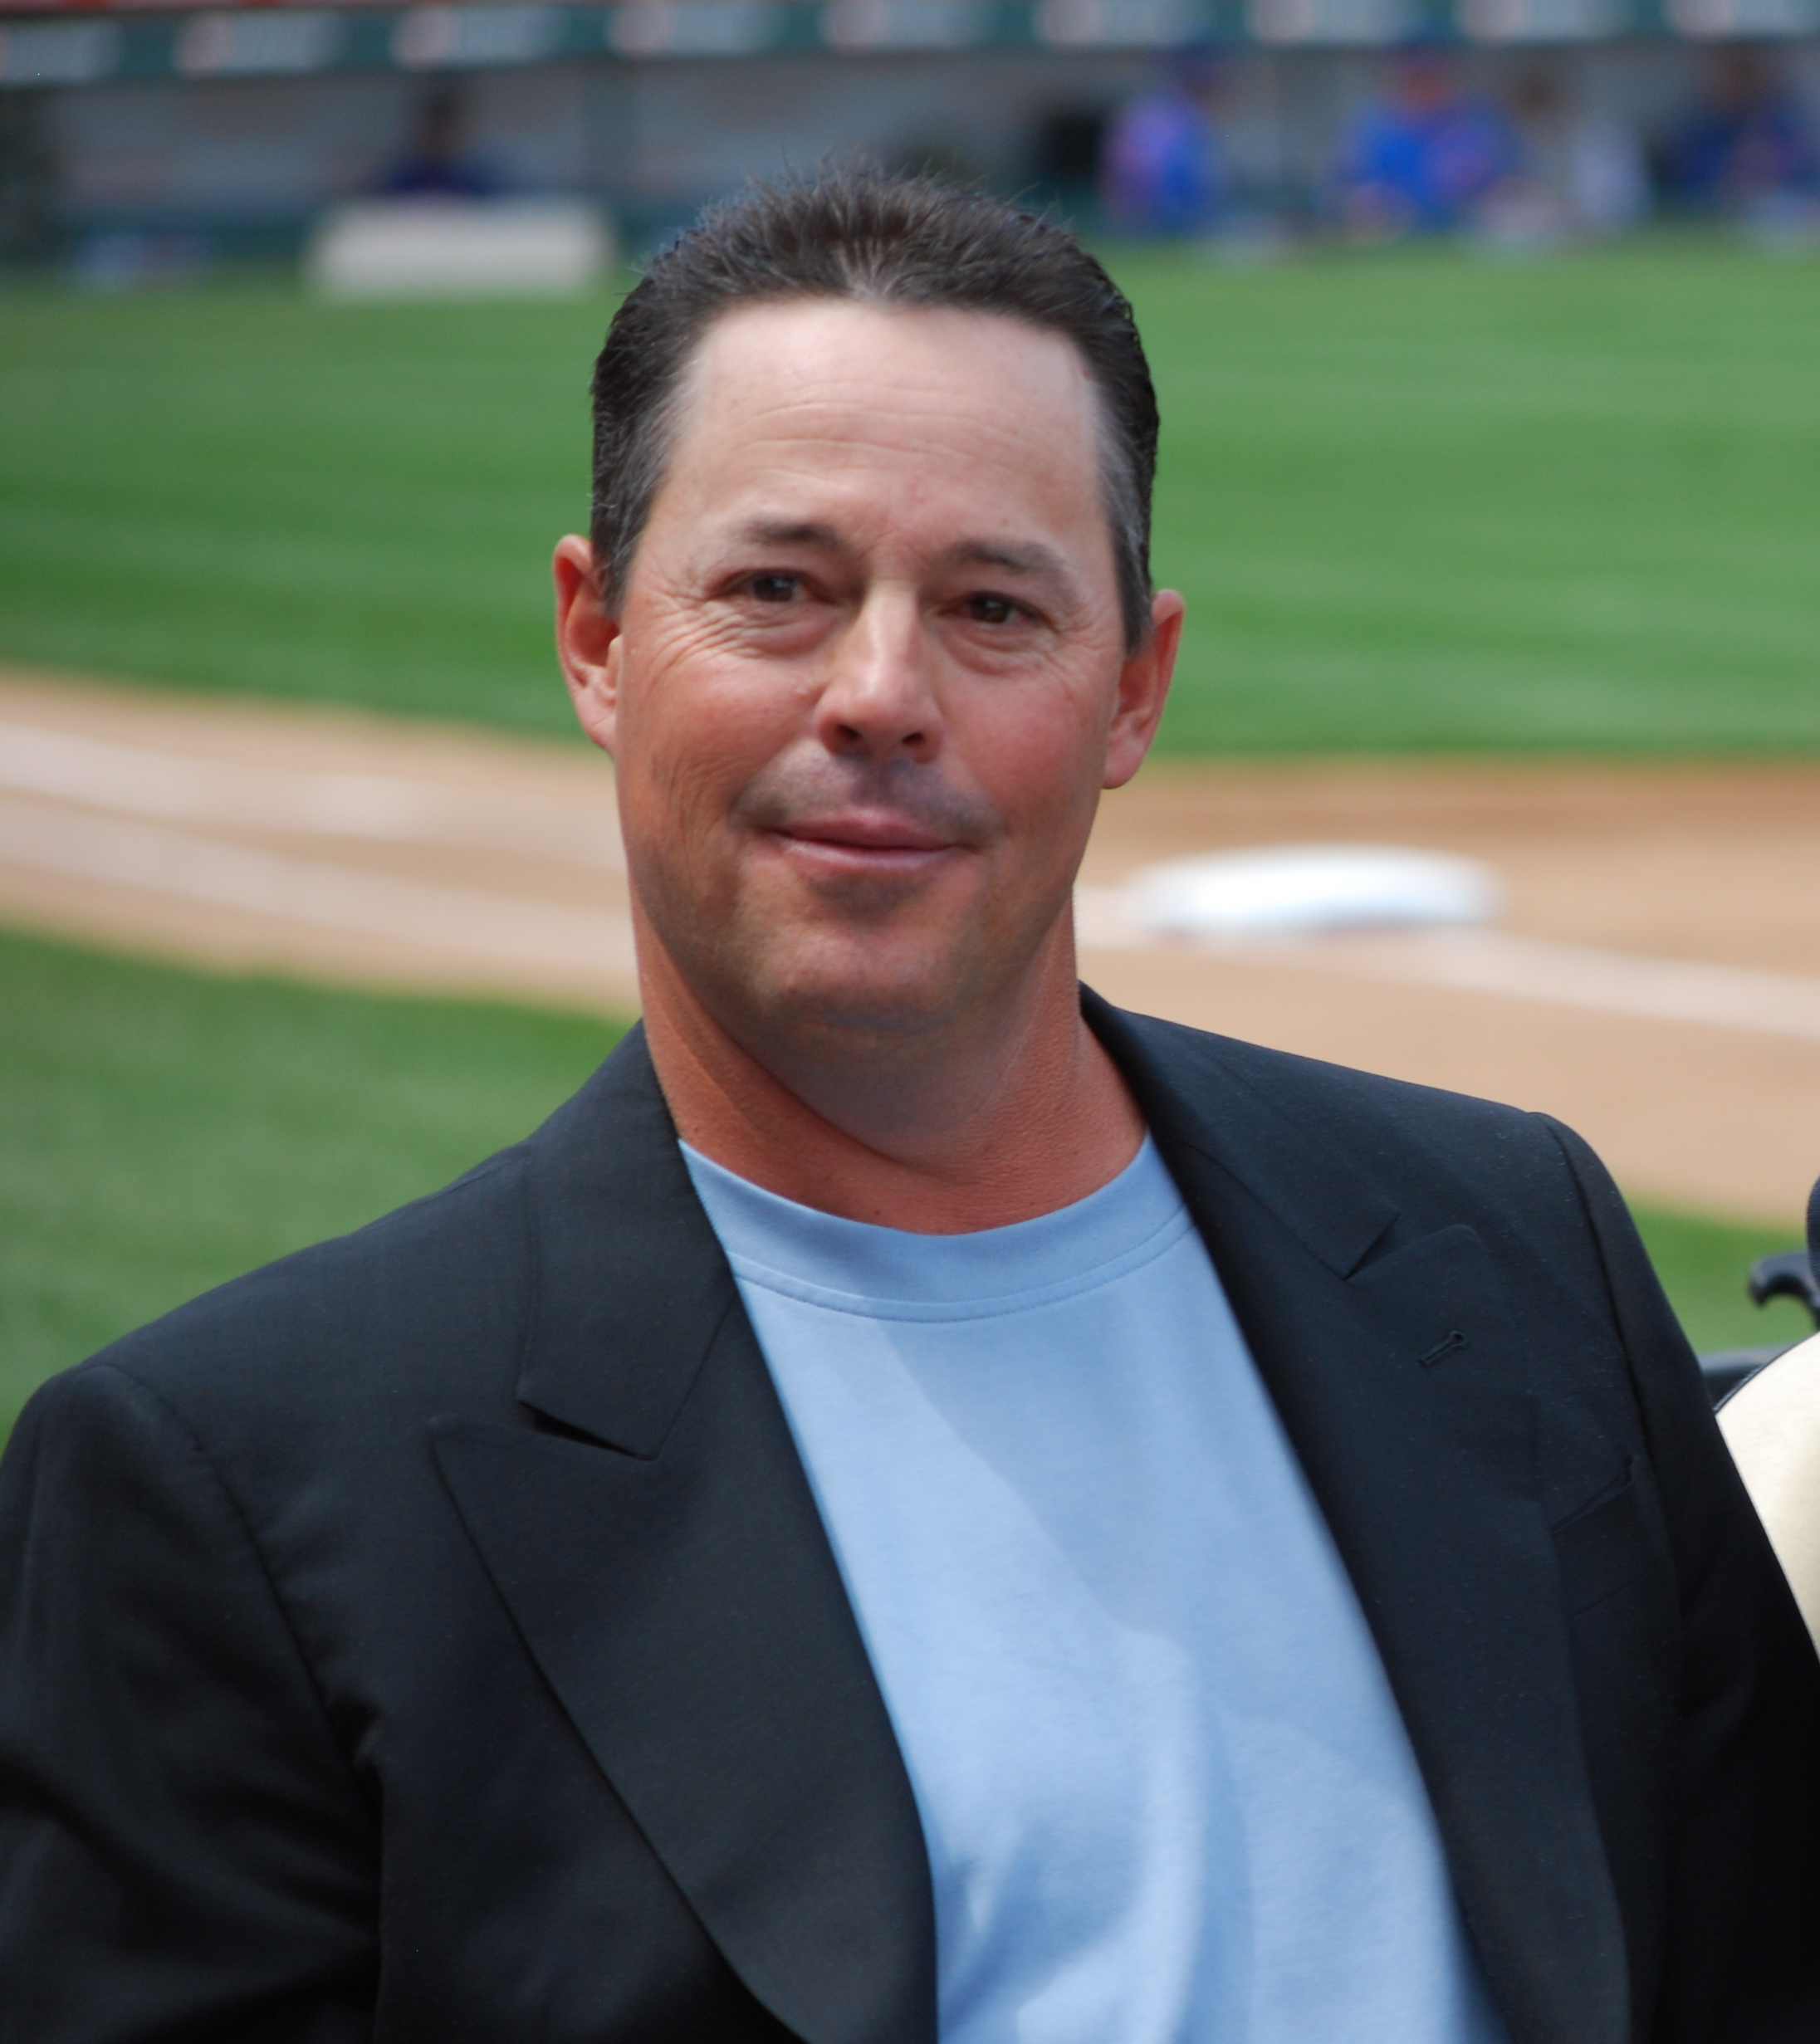 Greg Maddux's quote #3